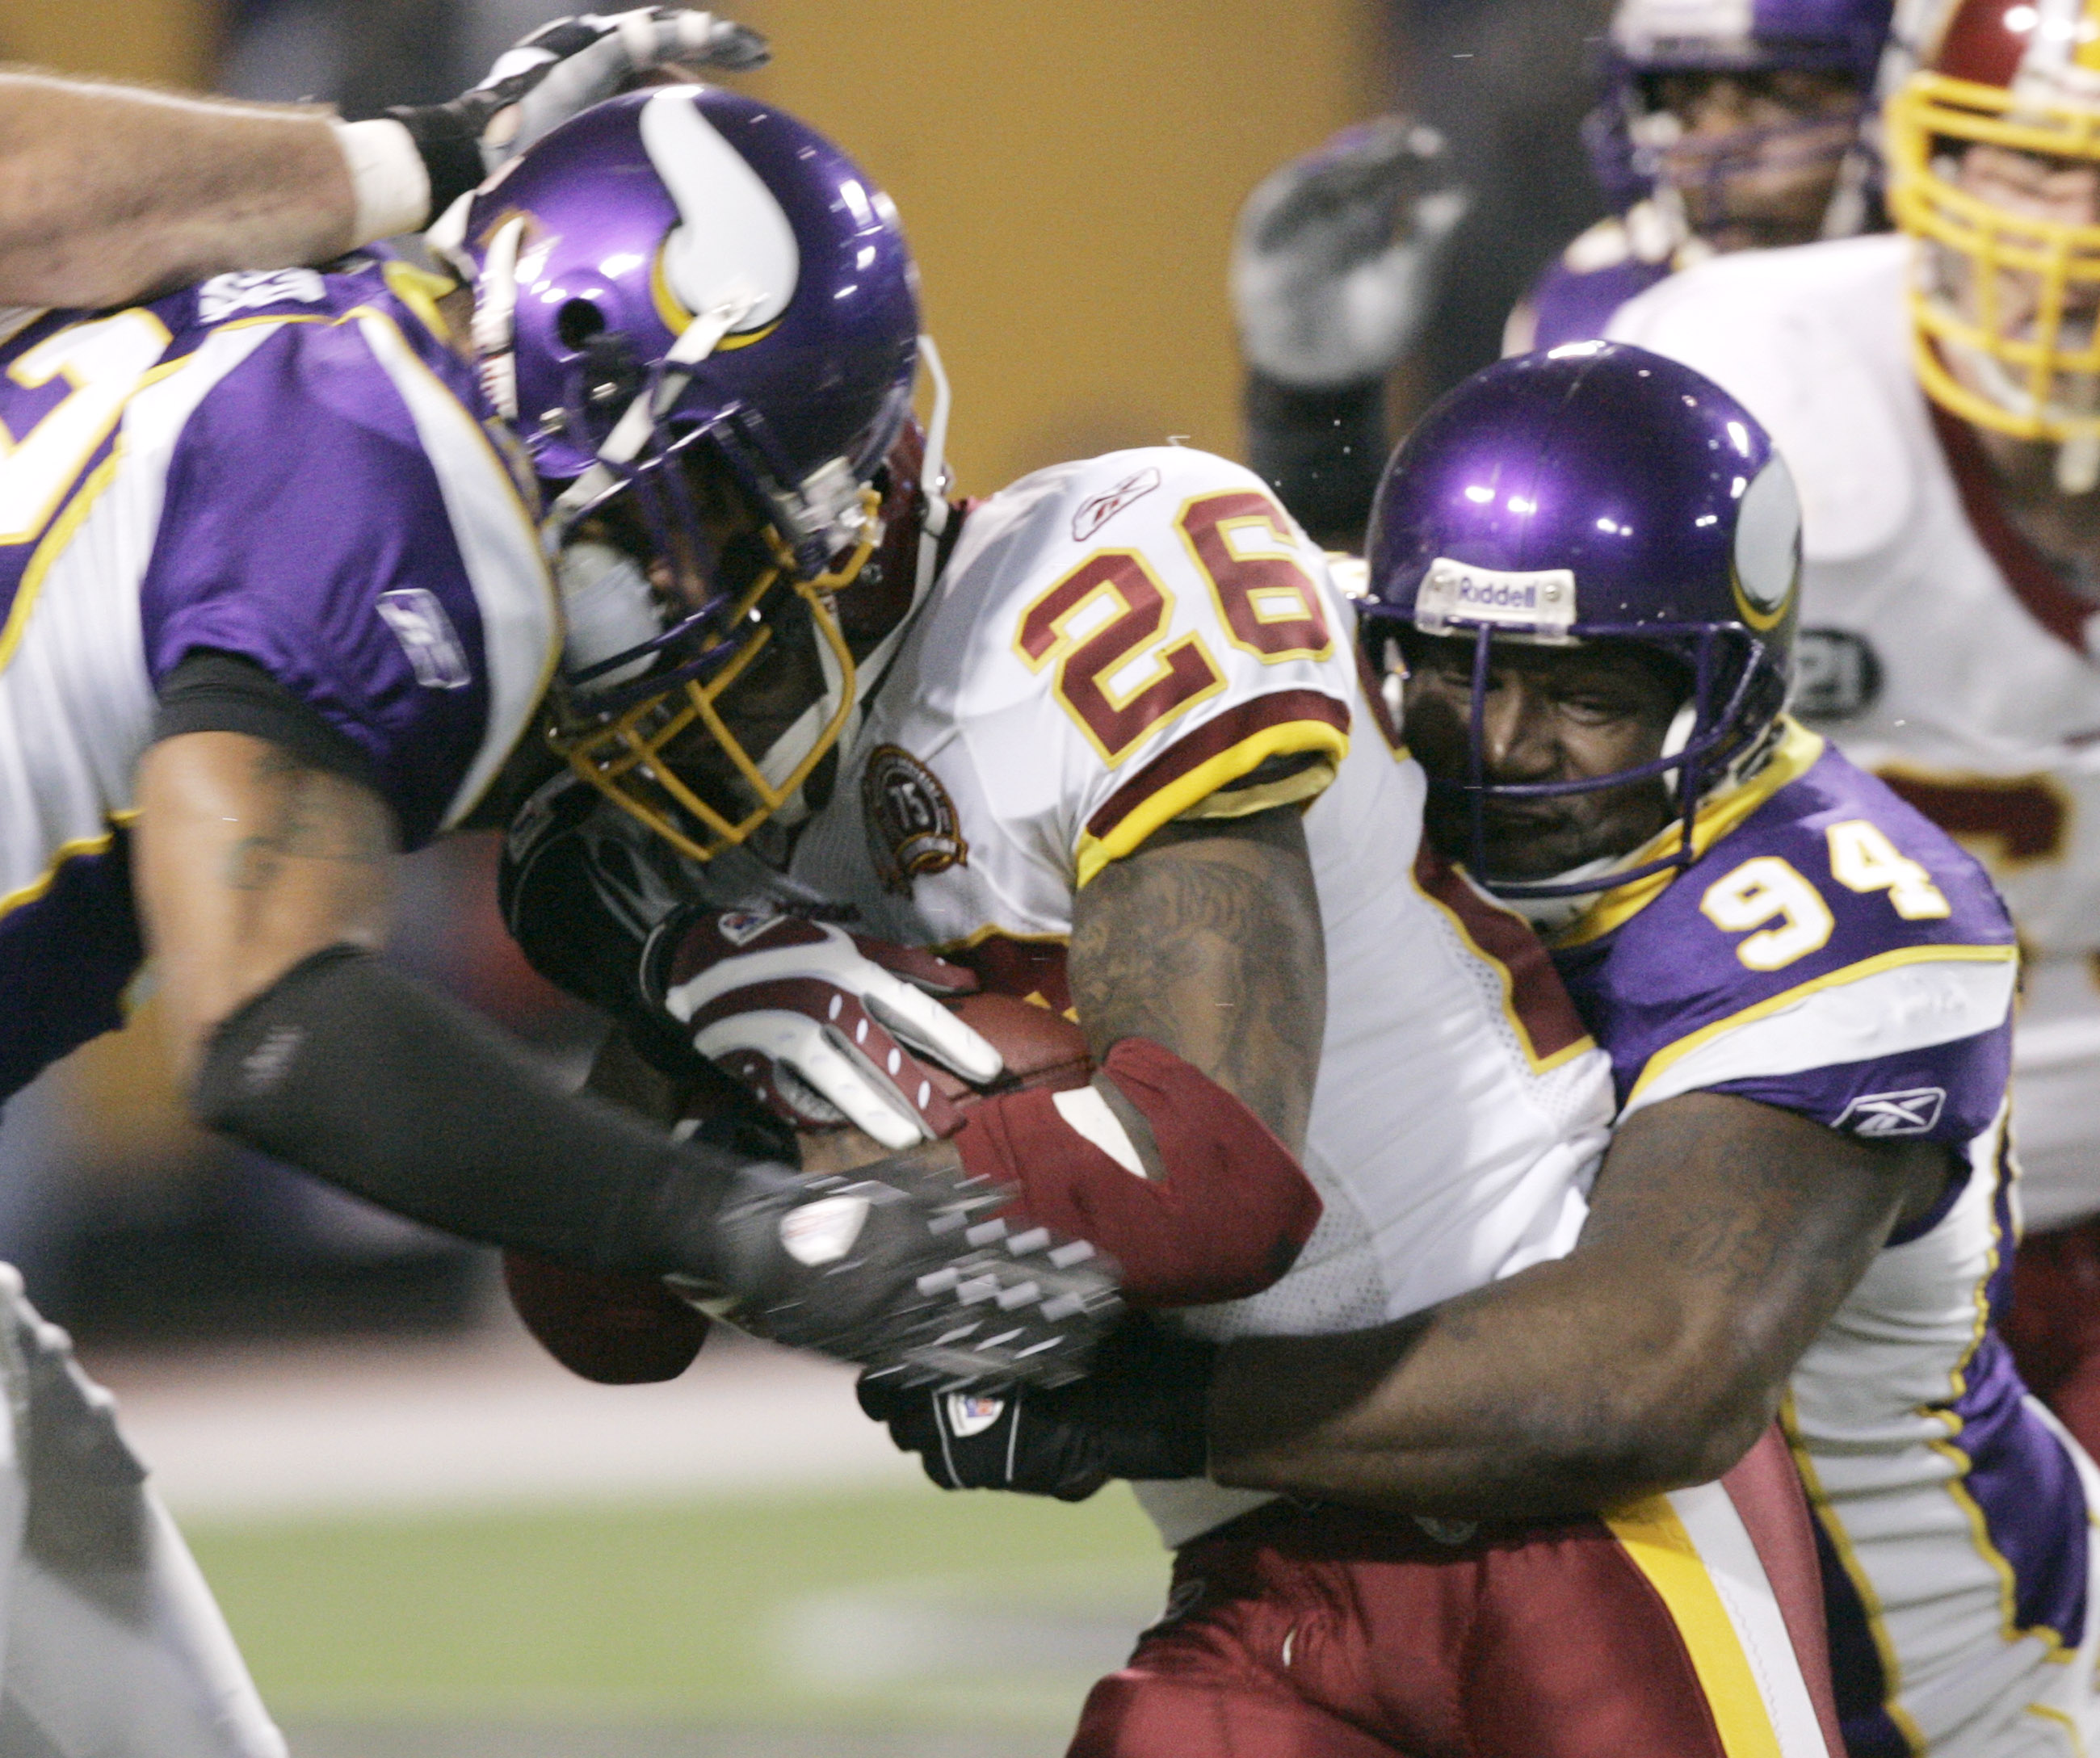 The Minnesota Vikings' Darren Sharper, left, and Pat Williams, right, bring down Washington Redskins running back Clinton Portis for a loss in the fir...